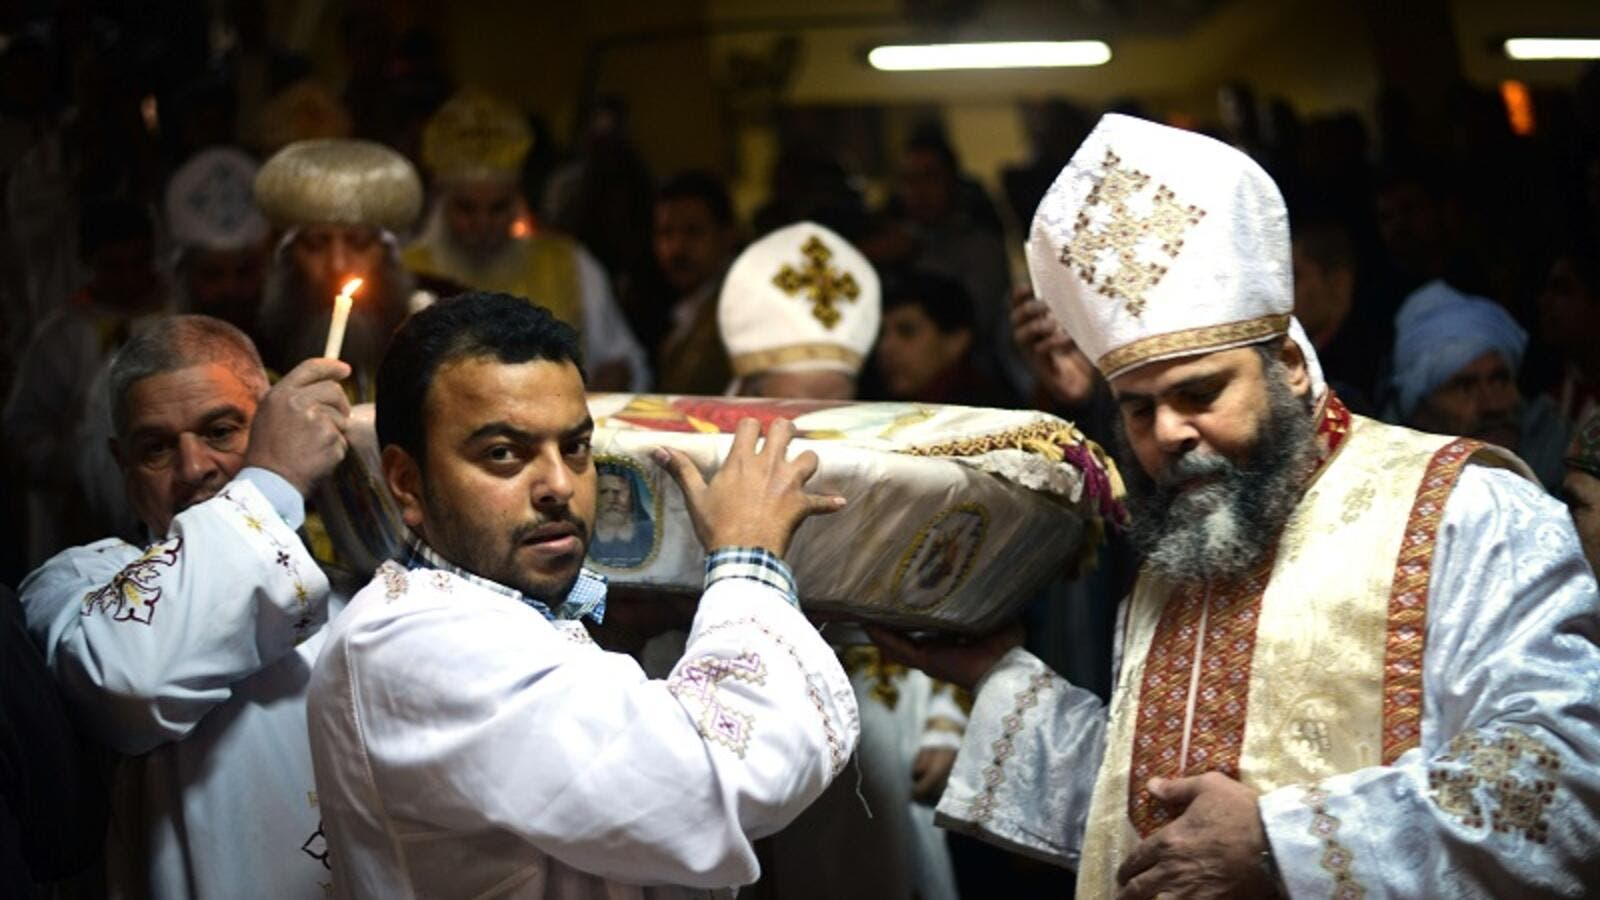 Egyptian Coptic Christian religious leaders celebrate Christmas in the monastery of Saint Samaan in Cairo on Jan. 6, 2015 (AFP)